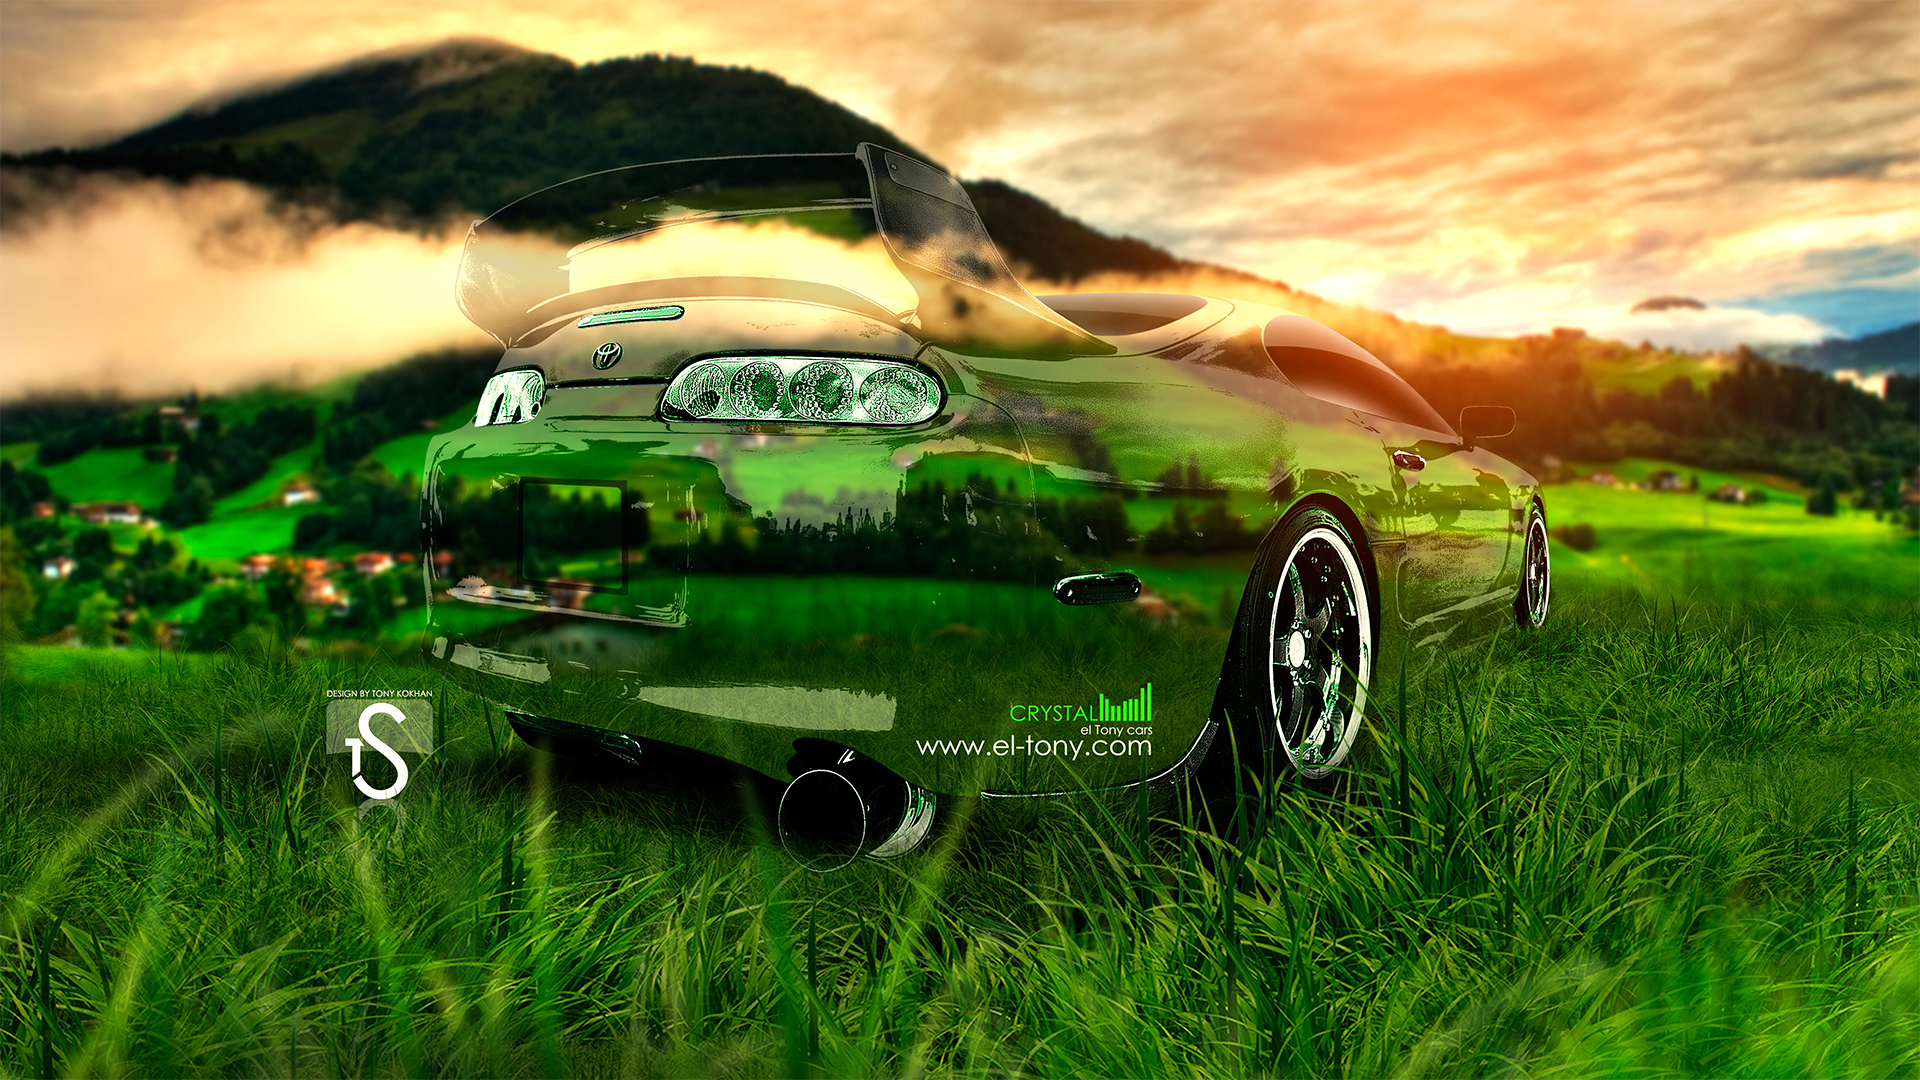 Toyota Supra Crystal Nature Car 2013 | El Tony